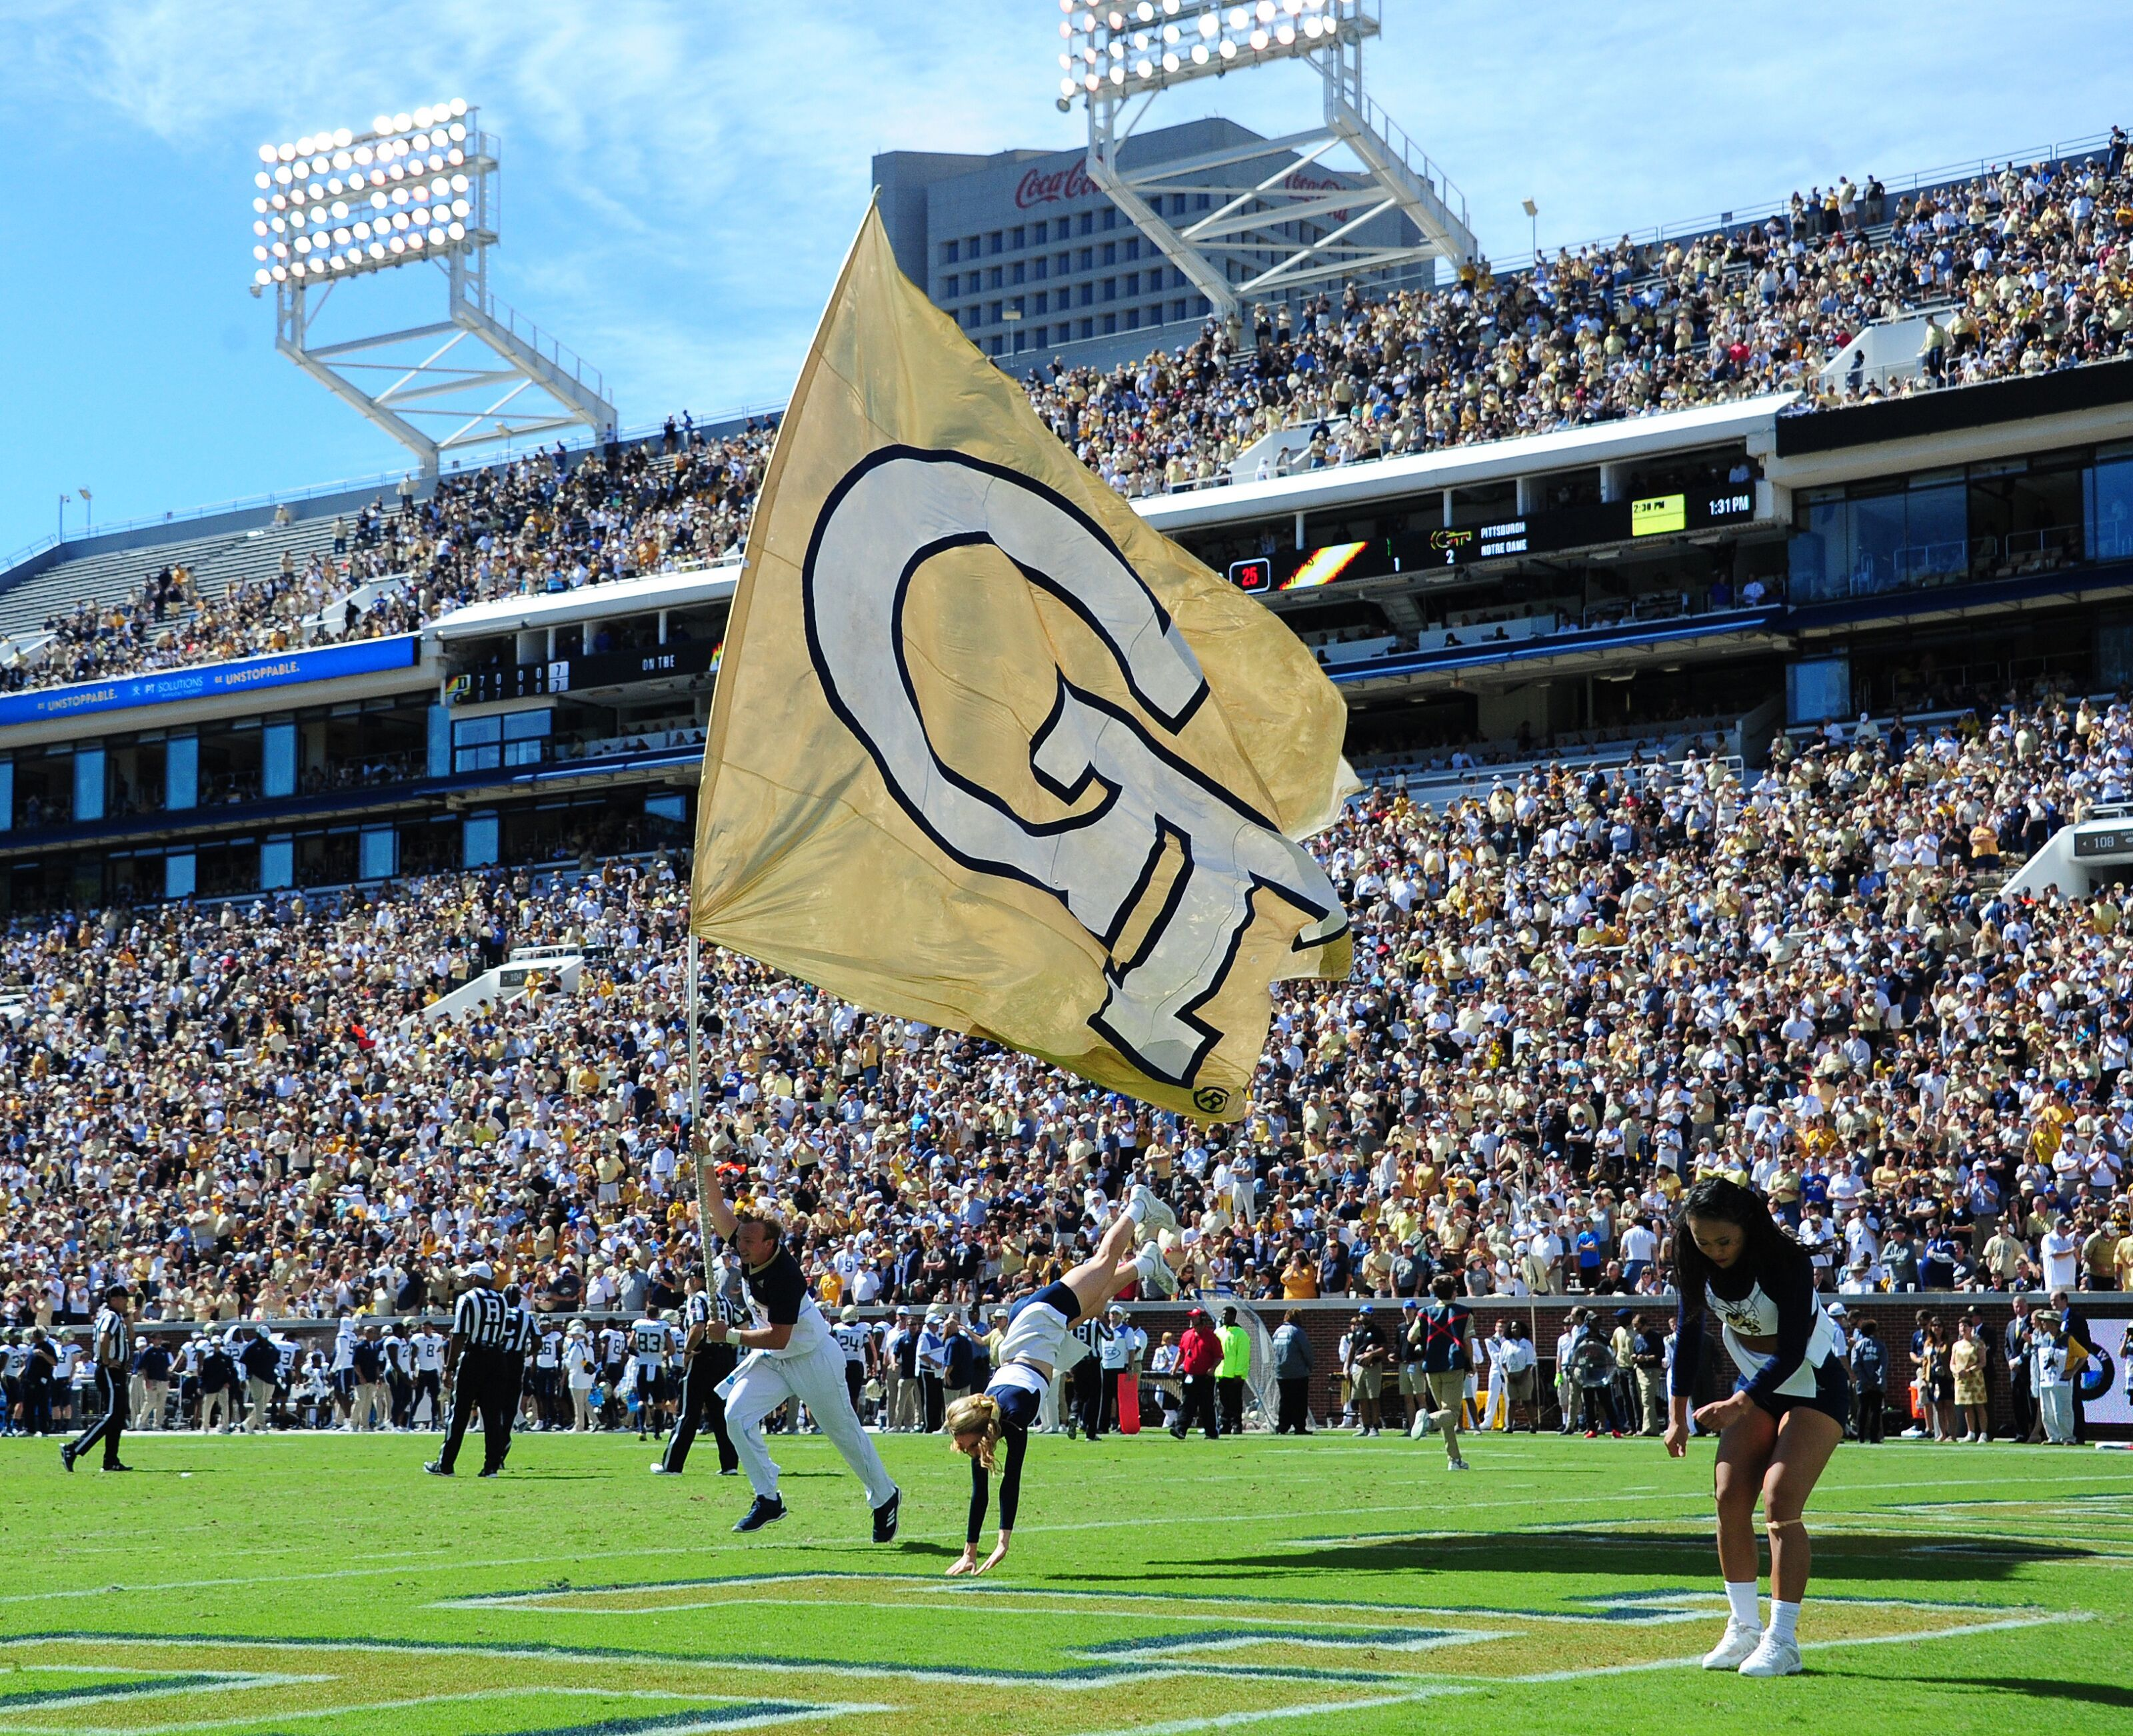 Georgia Tech Football: Bowl projections heading into Clean, Old-Fashioned Hate